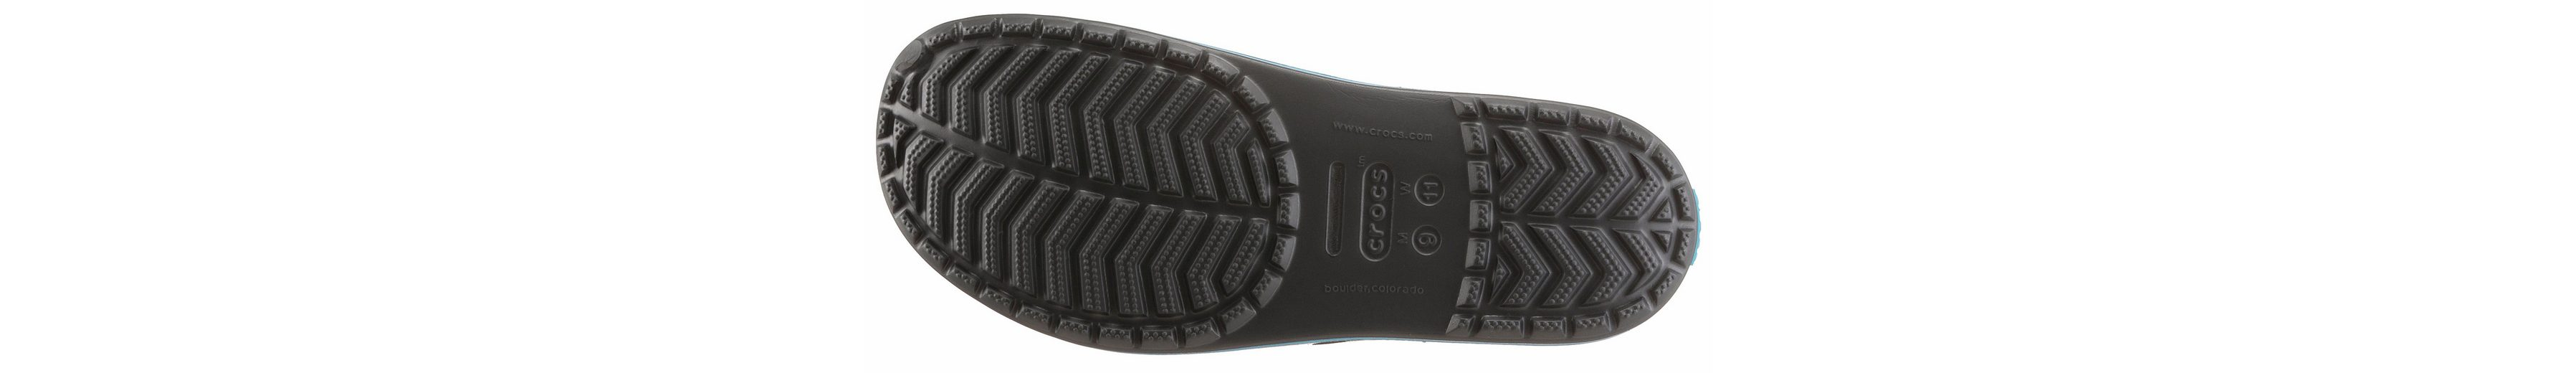 Crocs Pantolette, mit Logo-Applikation